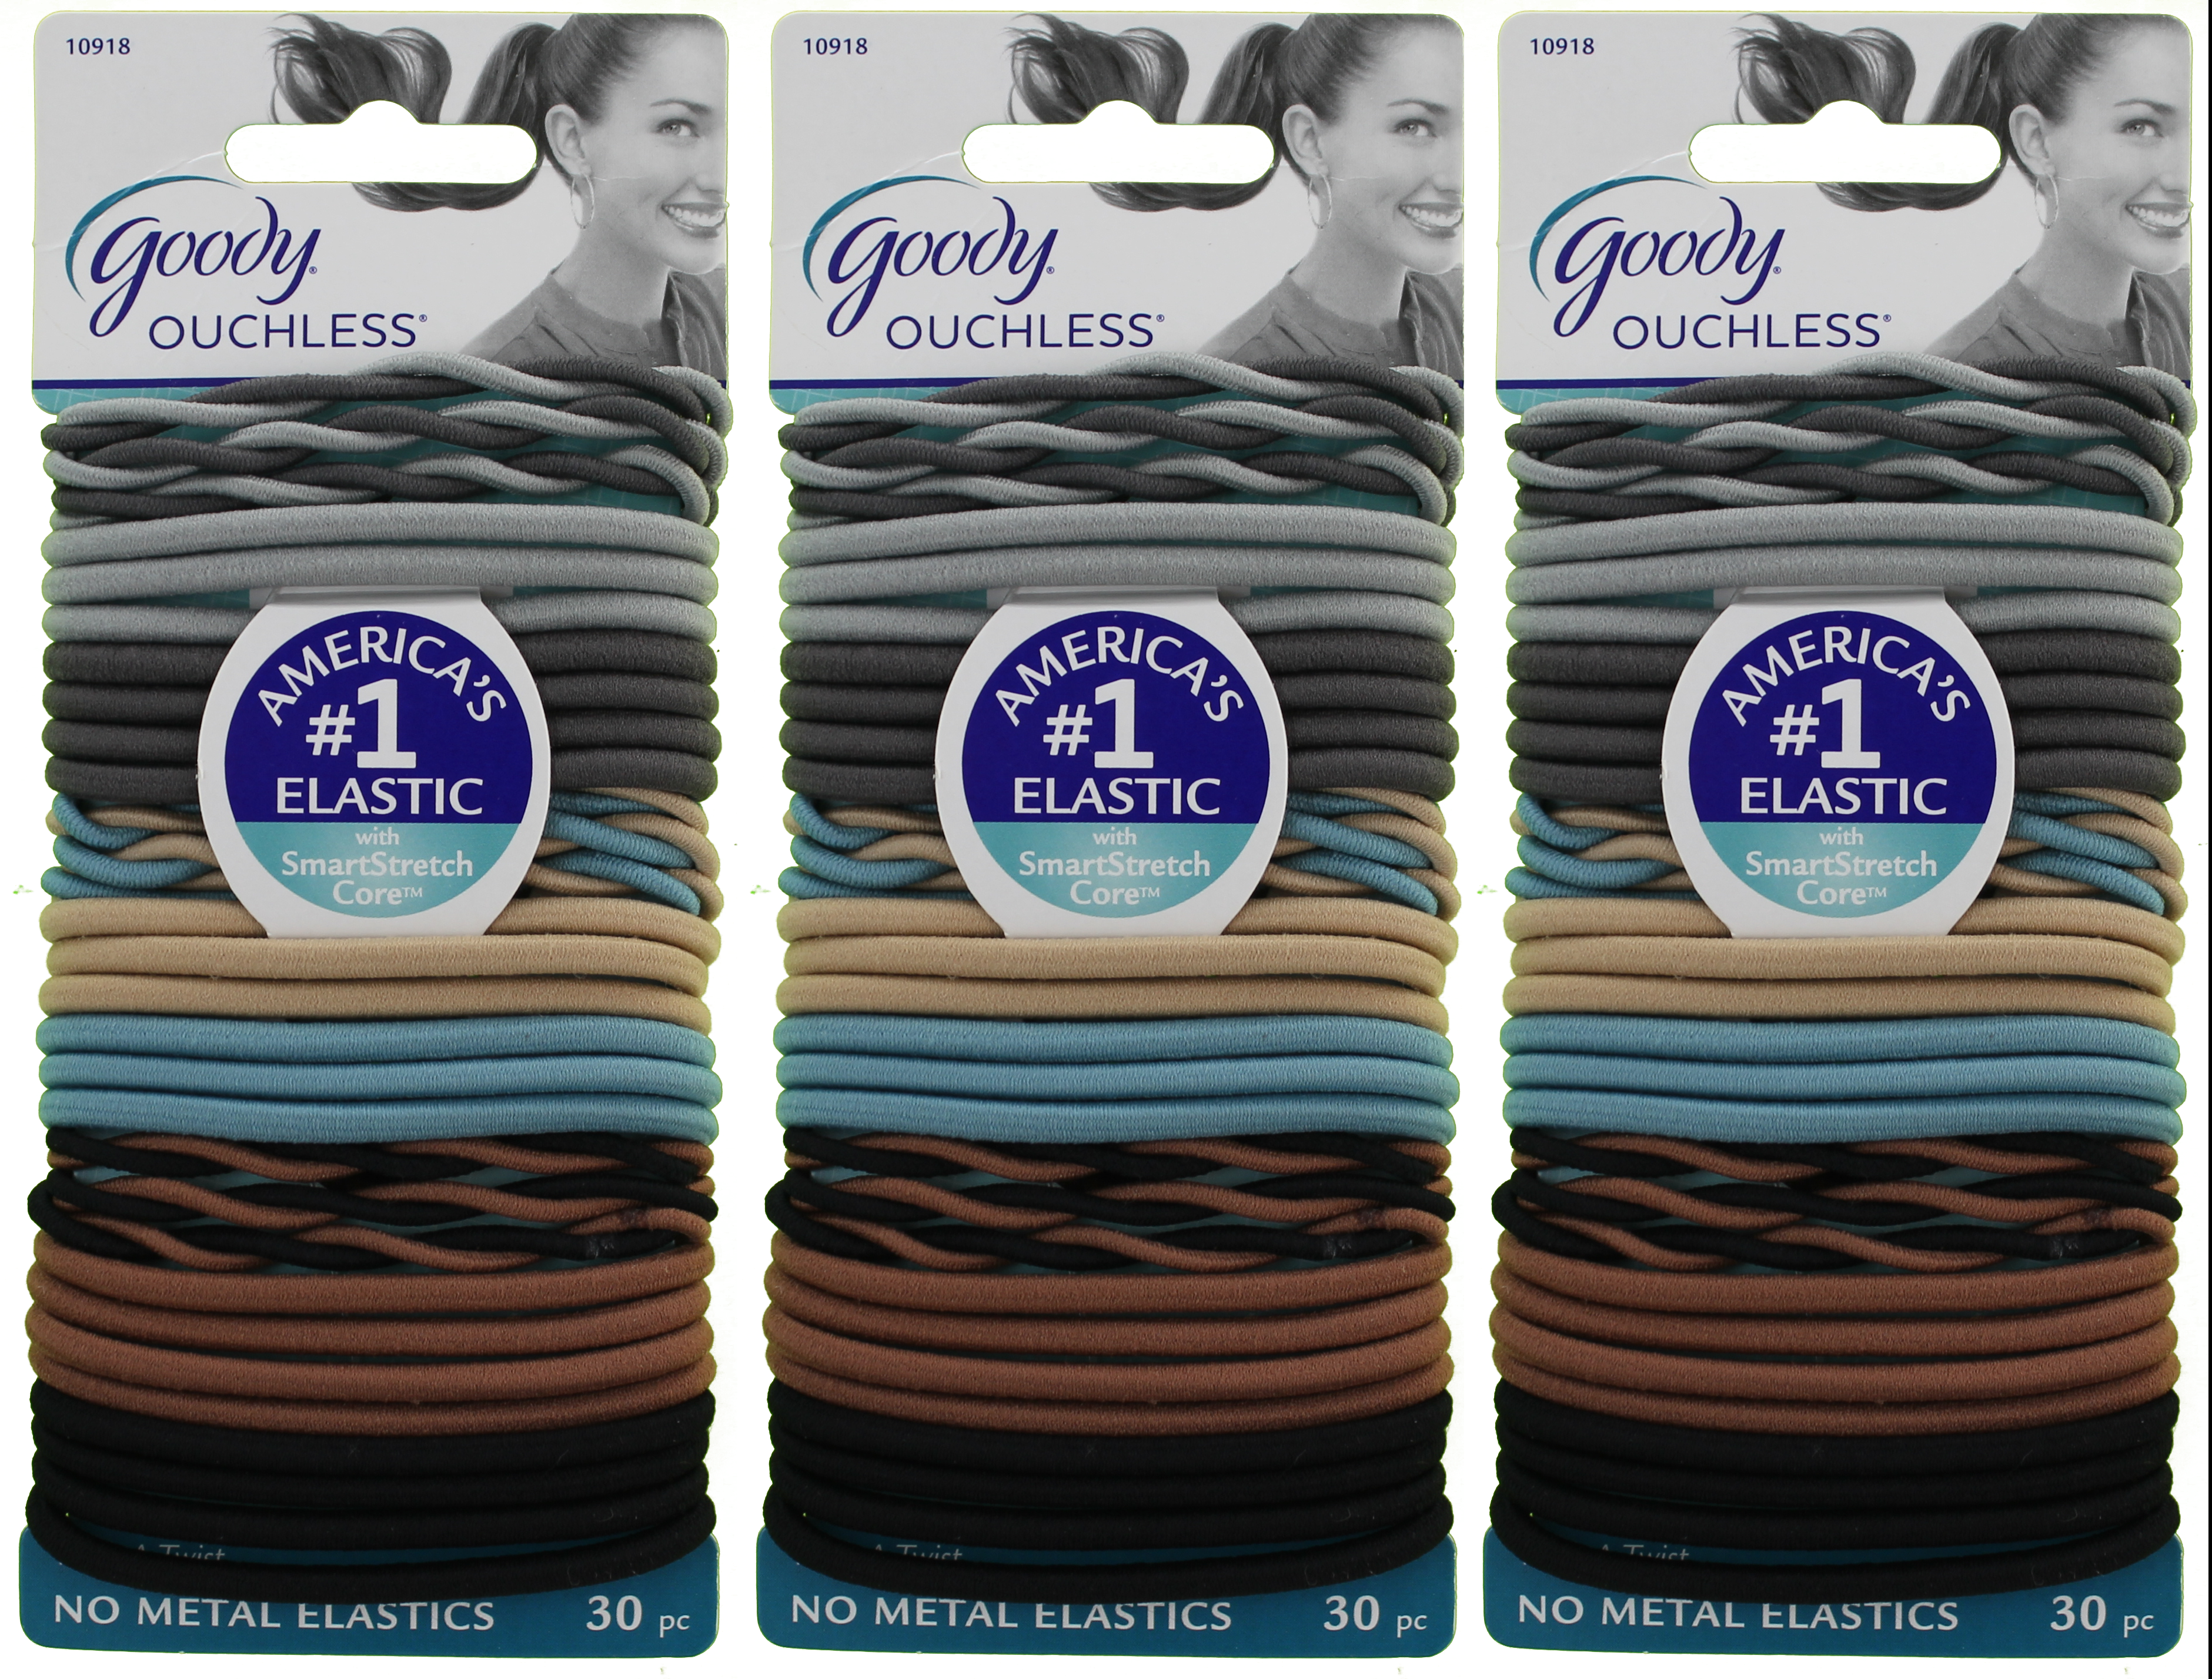 Goody Ouchless Elastics, With A Twist, 30 Count